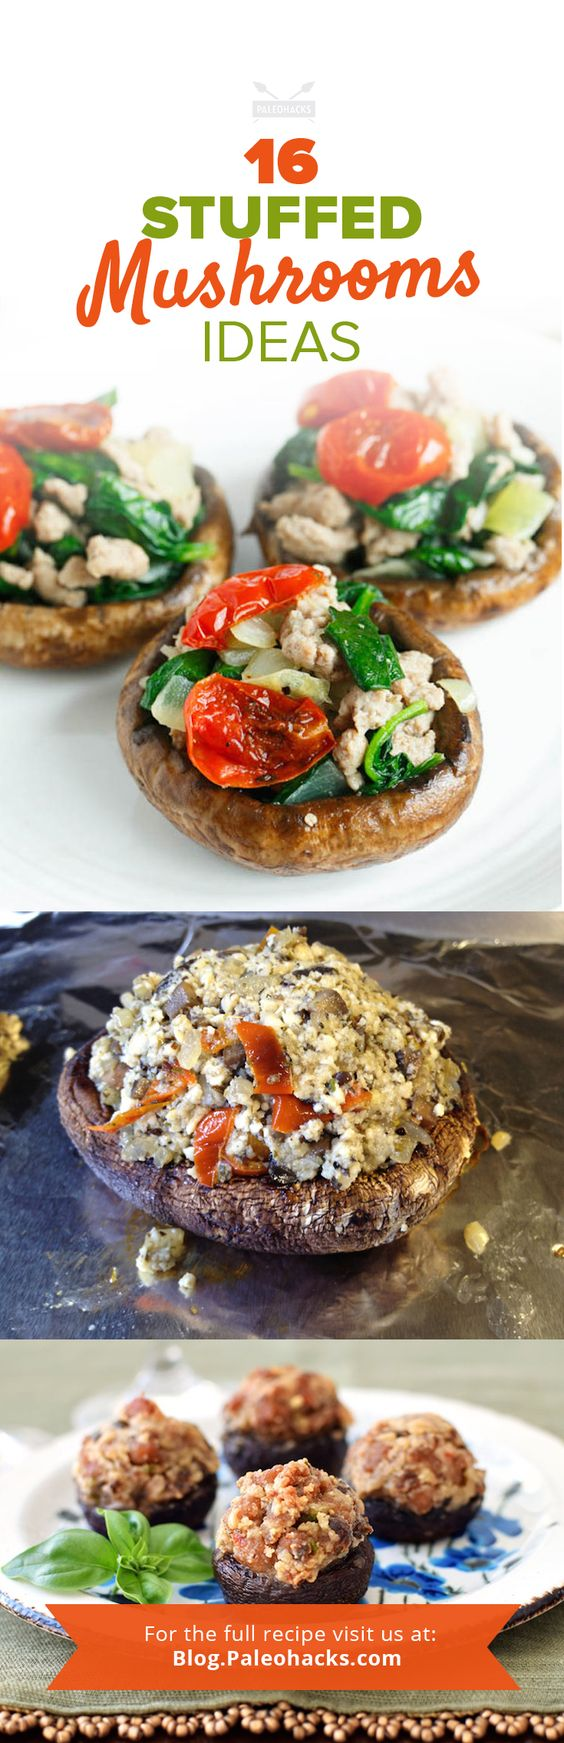 Stuffed mushrooms make for a warm, bite-sized treat or a full-on meal (hello, portabellas!) with loads of hearty flavor. For the full recipe compilation visit us here: http://paleo.co/16stuffedshrooms